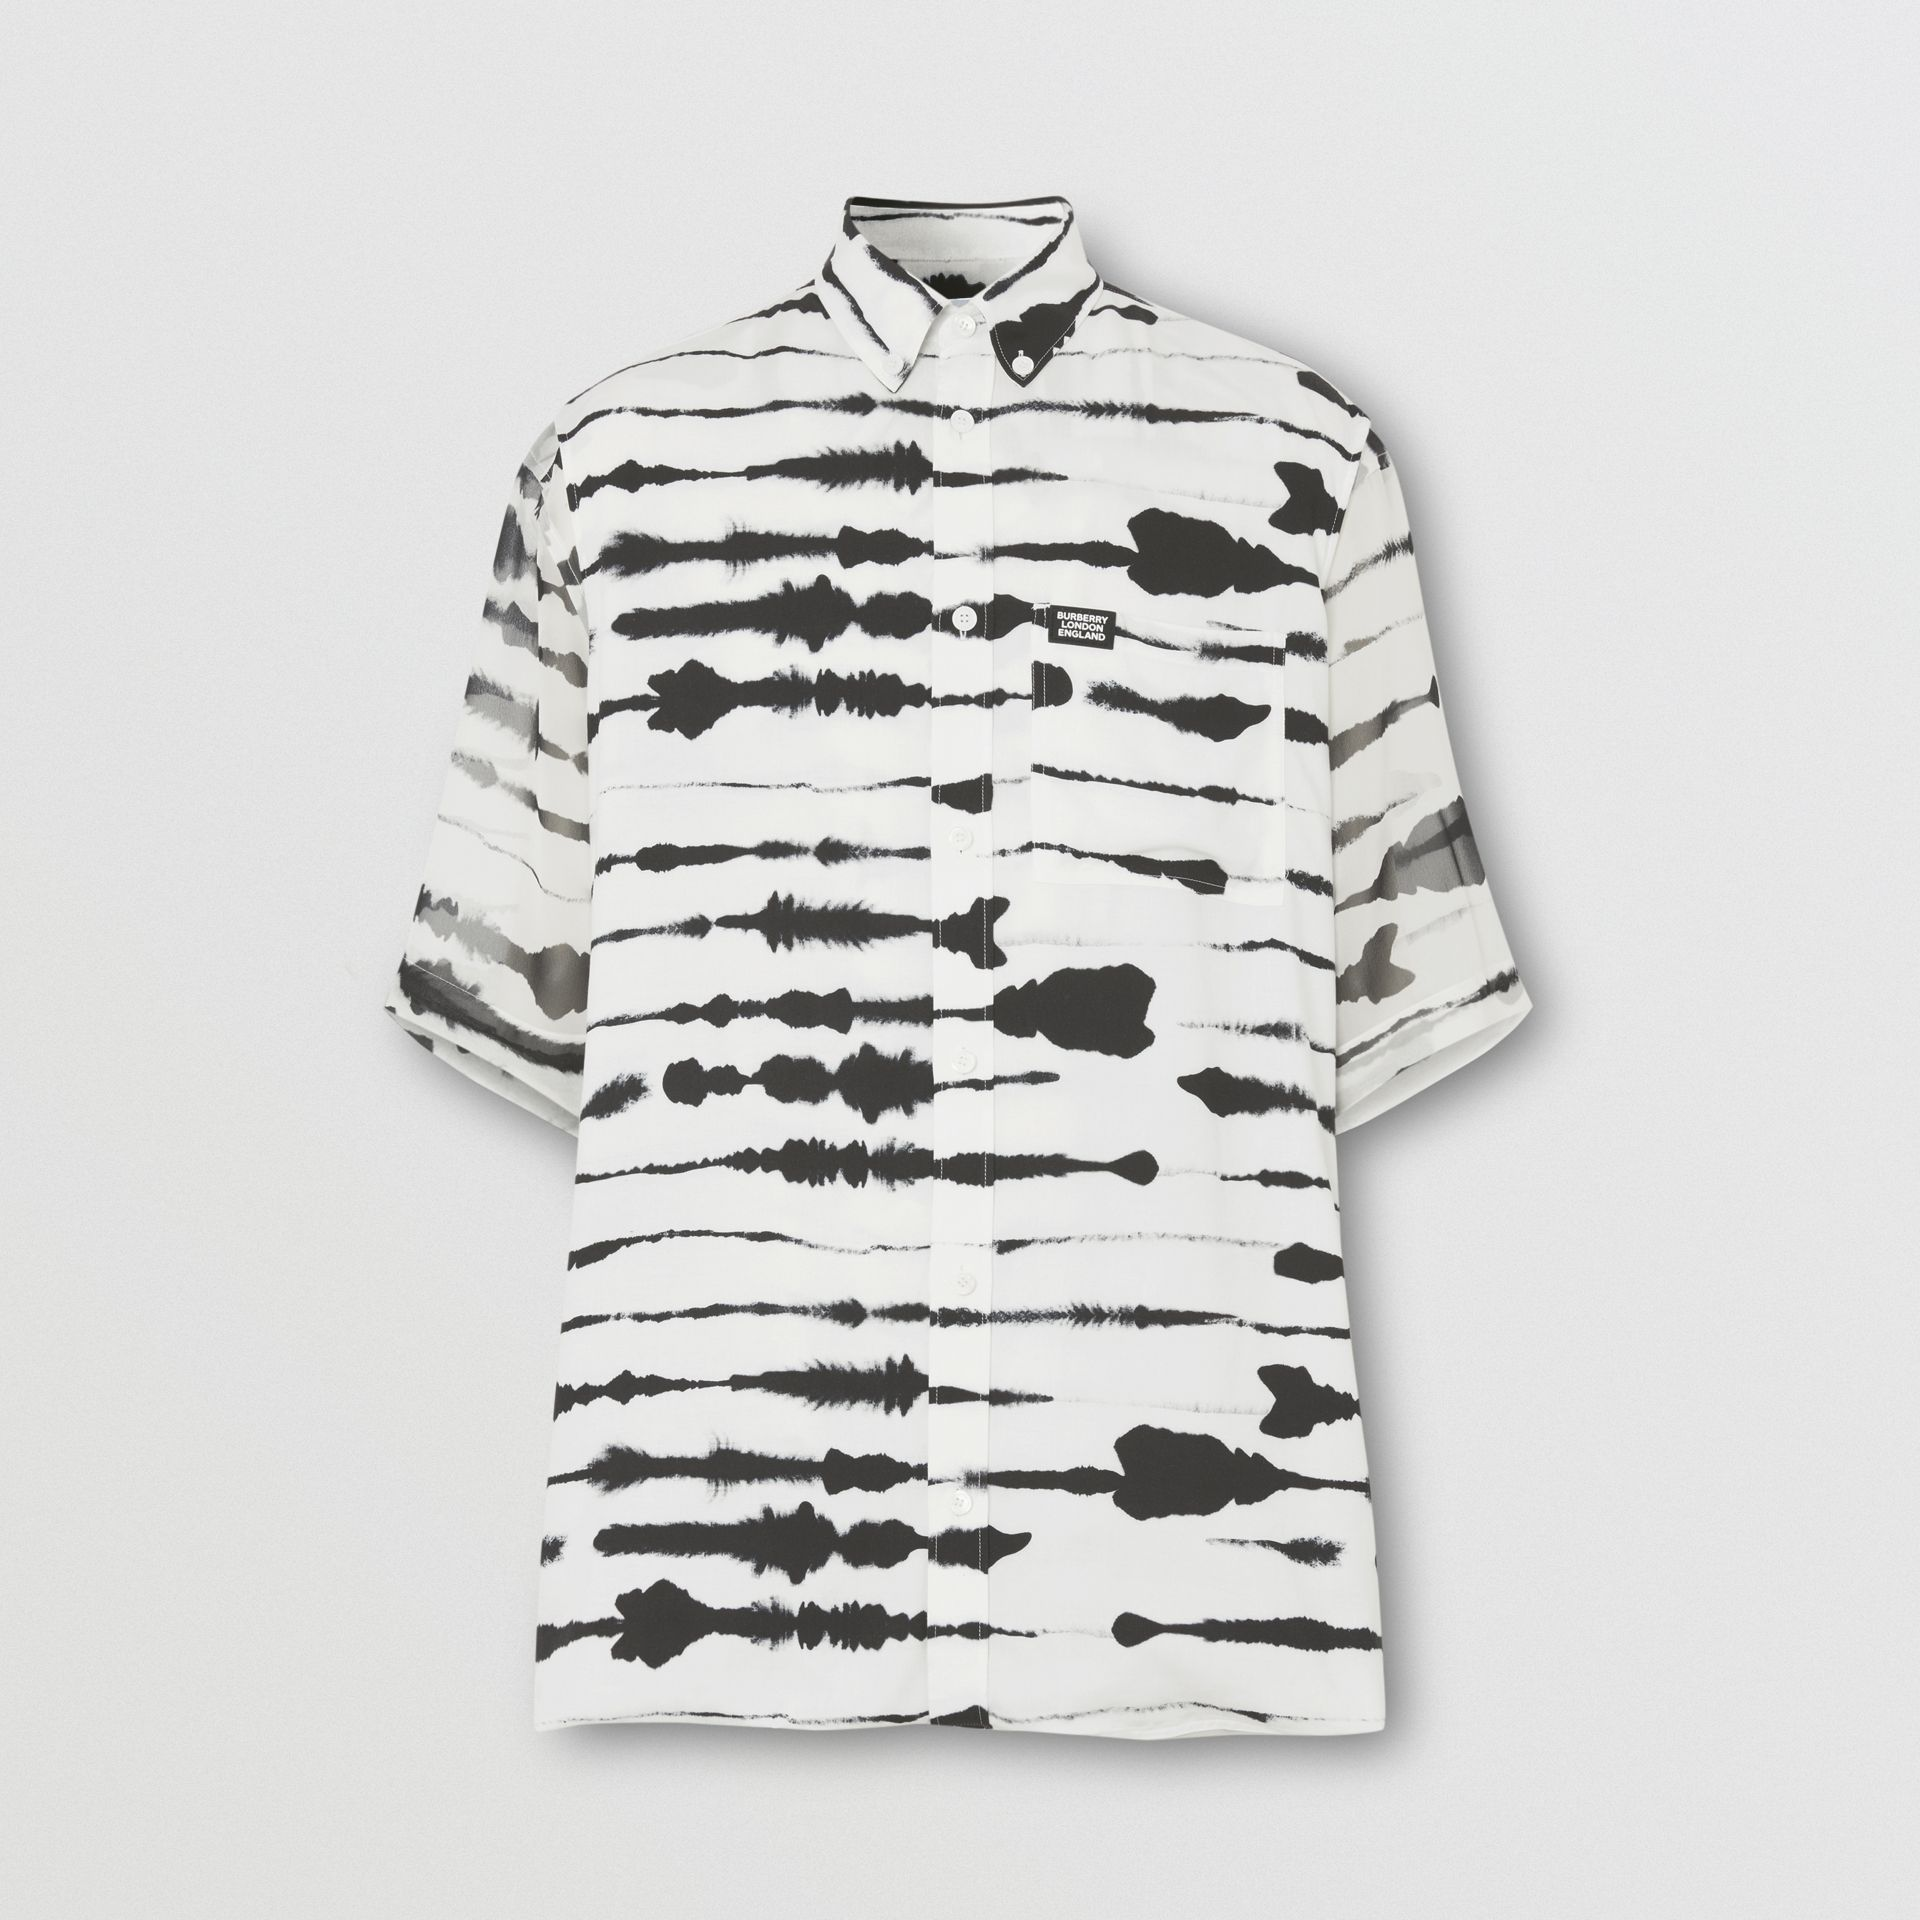 Short-sleeve Silk Overlay Watercolour Print Twill Shirt in Monochrome | Burberry United States - gallery image 8